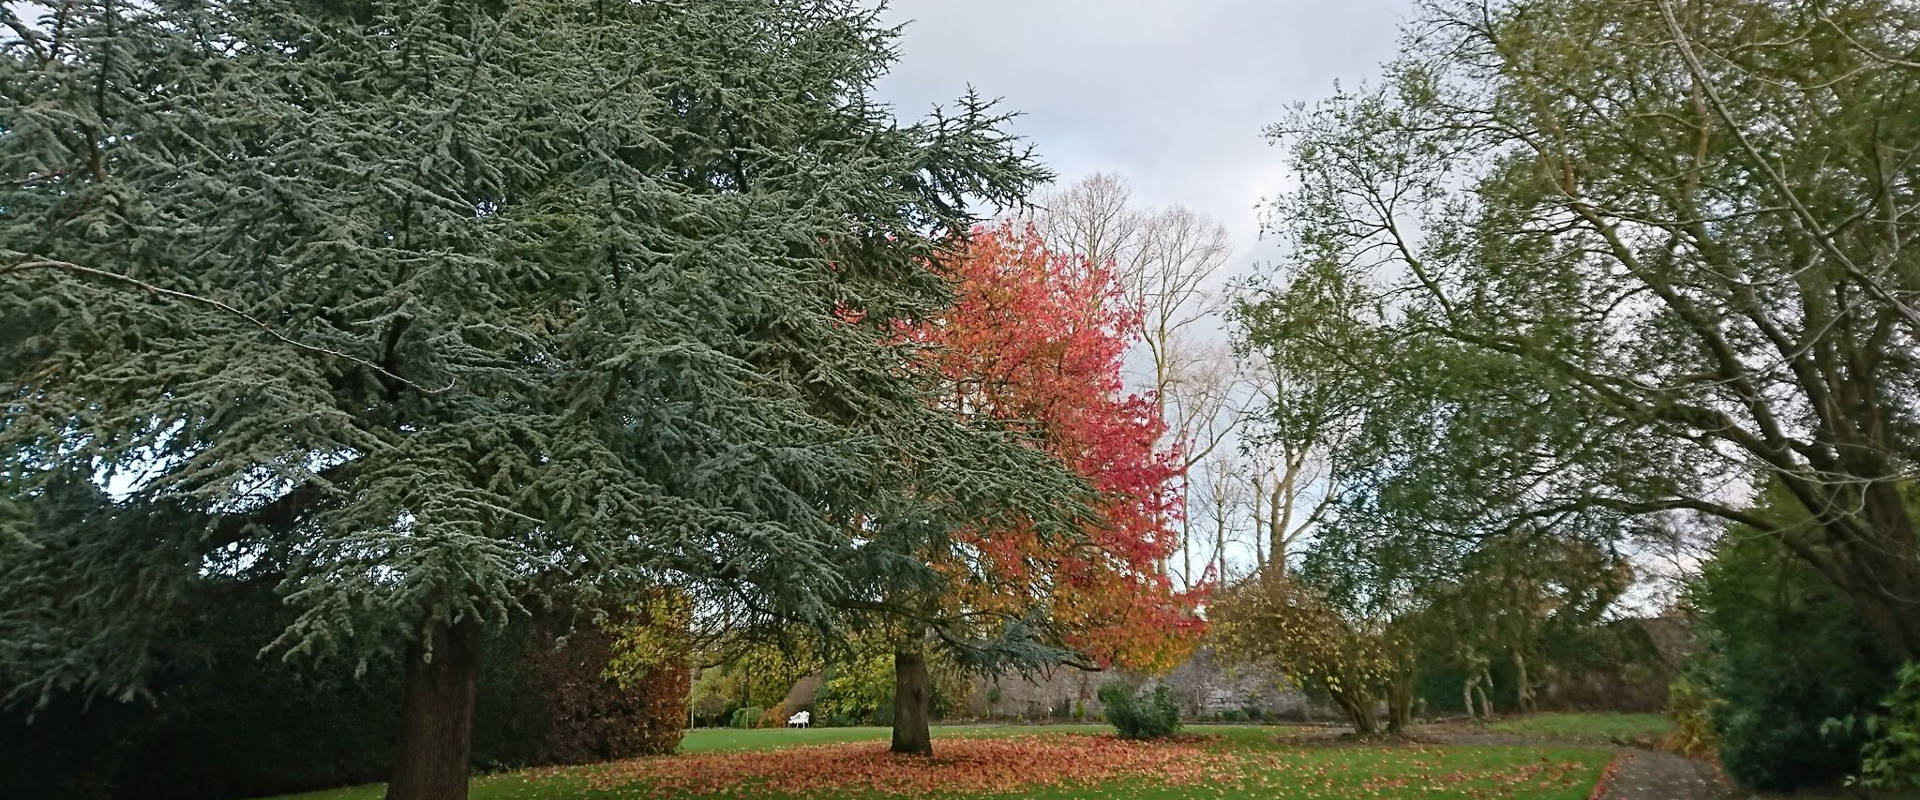 Victorian Walled Garden in Autumn